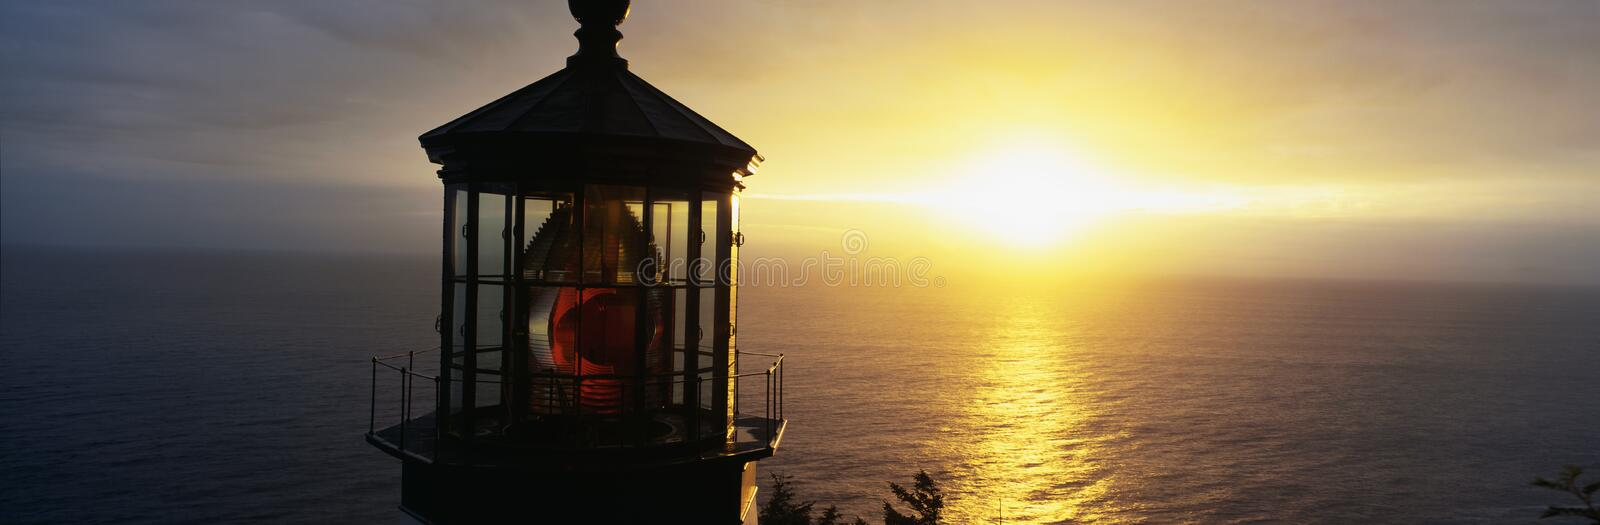 Cape Meares Lighthouse royalty free stock images